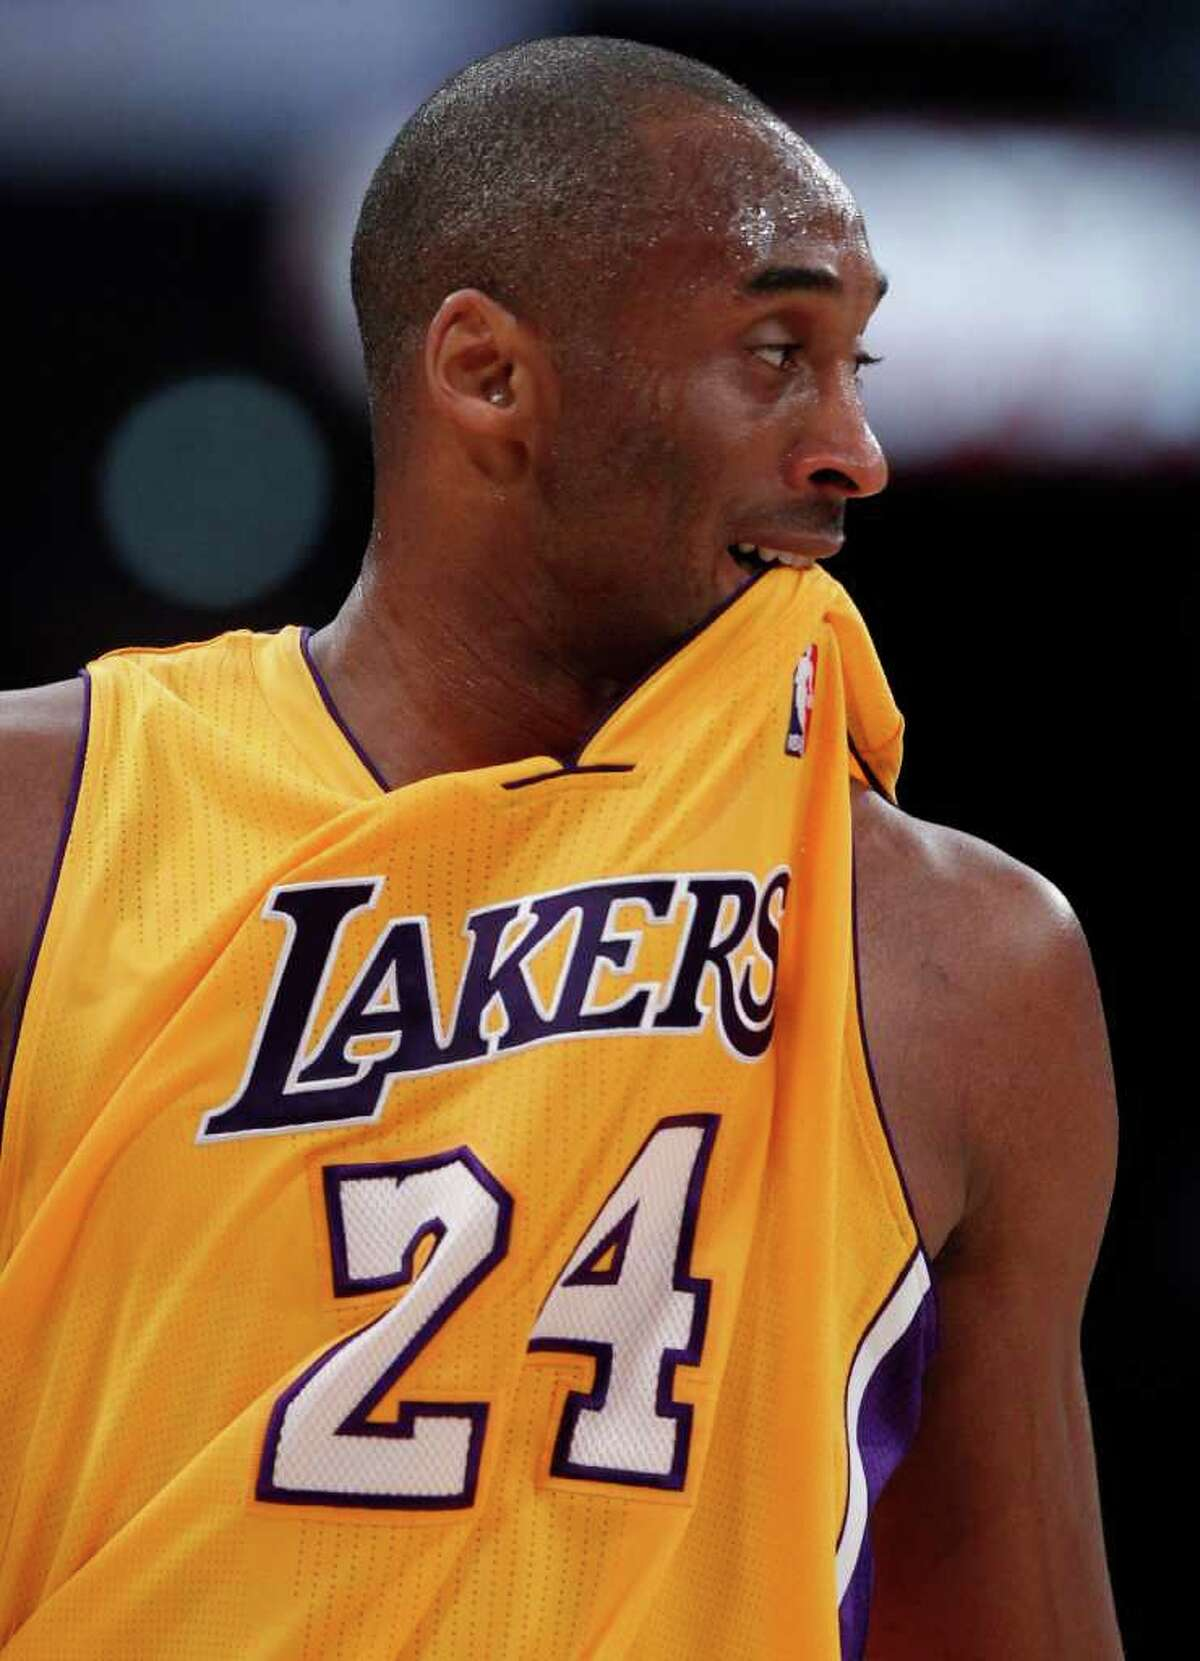 Los Angeles Lakers' Kobe Bryant bites his jersey during the first half of an NBA basketball game against the San Antonio Spurs in Los Angeles, Tuesday, April 12, 2011.